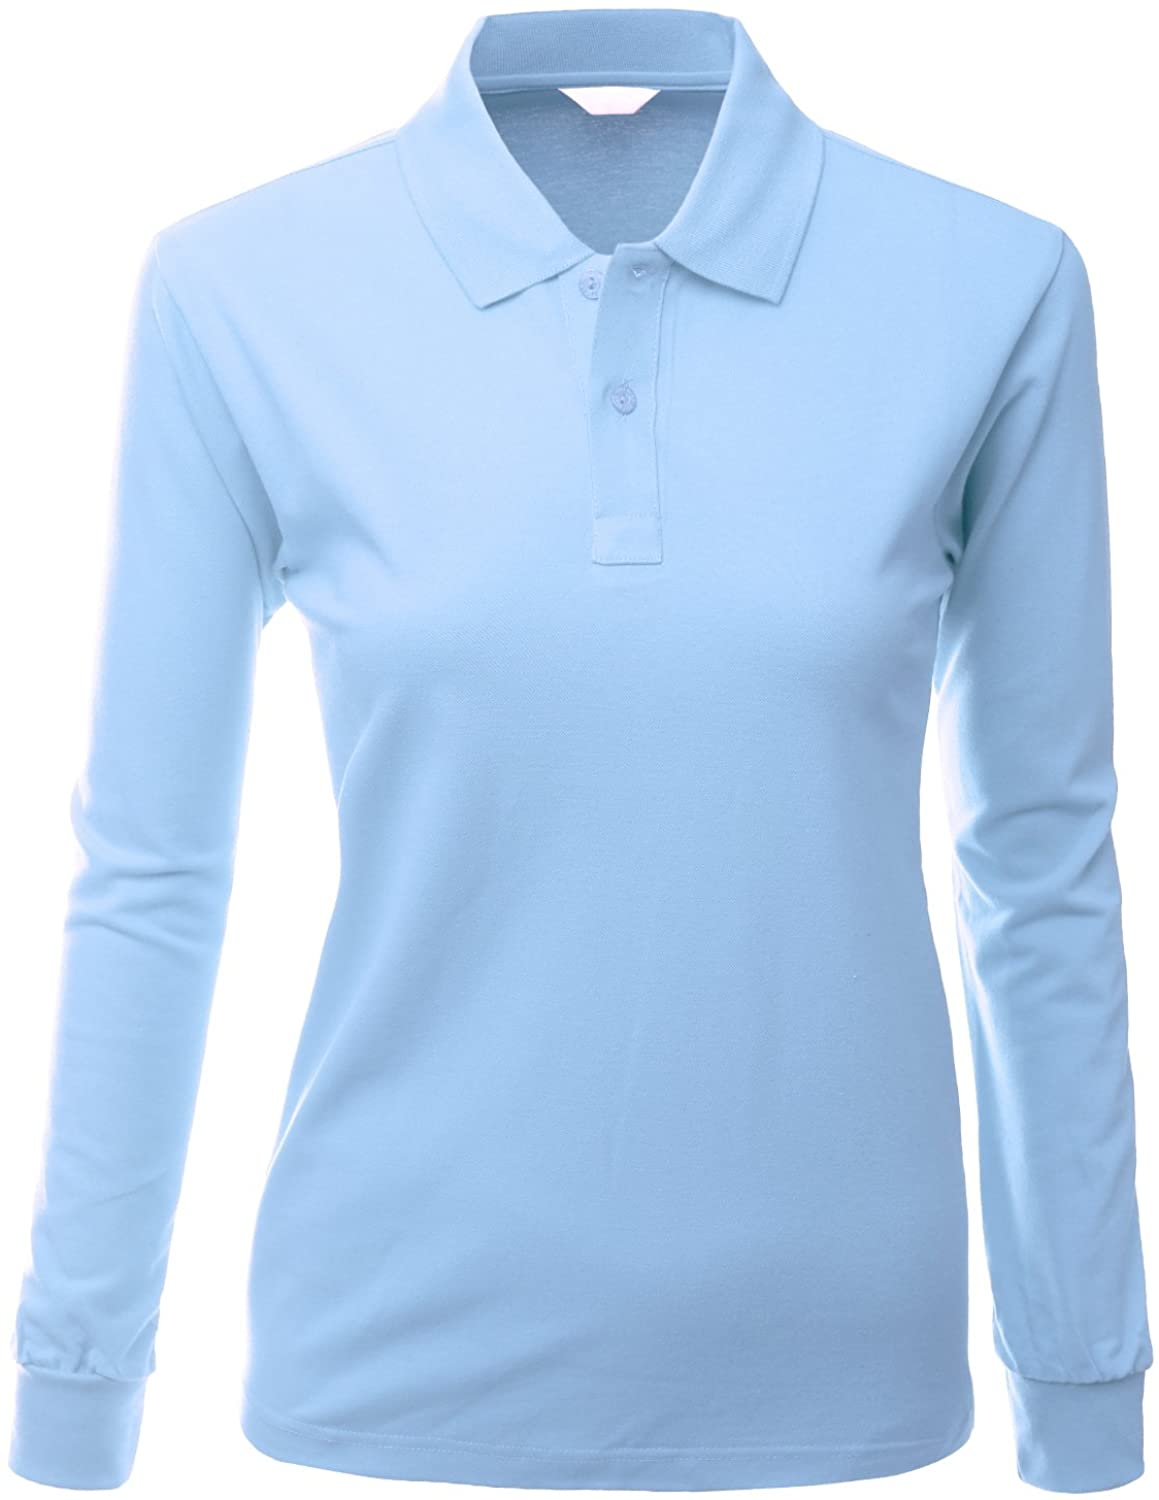 Women's Cotton Casual Basic Polo Dri Fit Long Sleeve Collar T Shirts SkyBlue Size 3XL